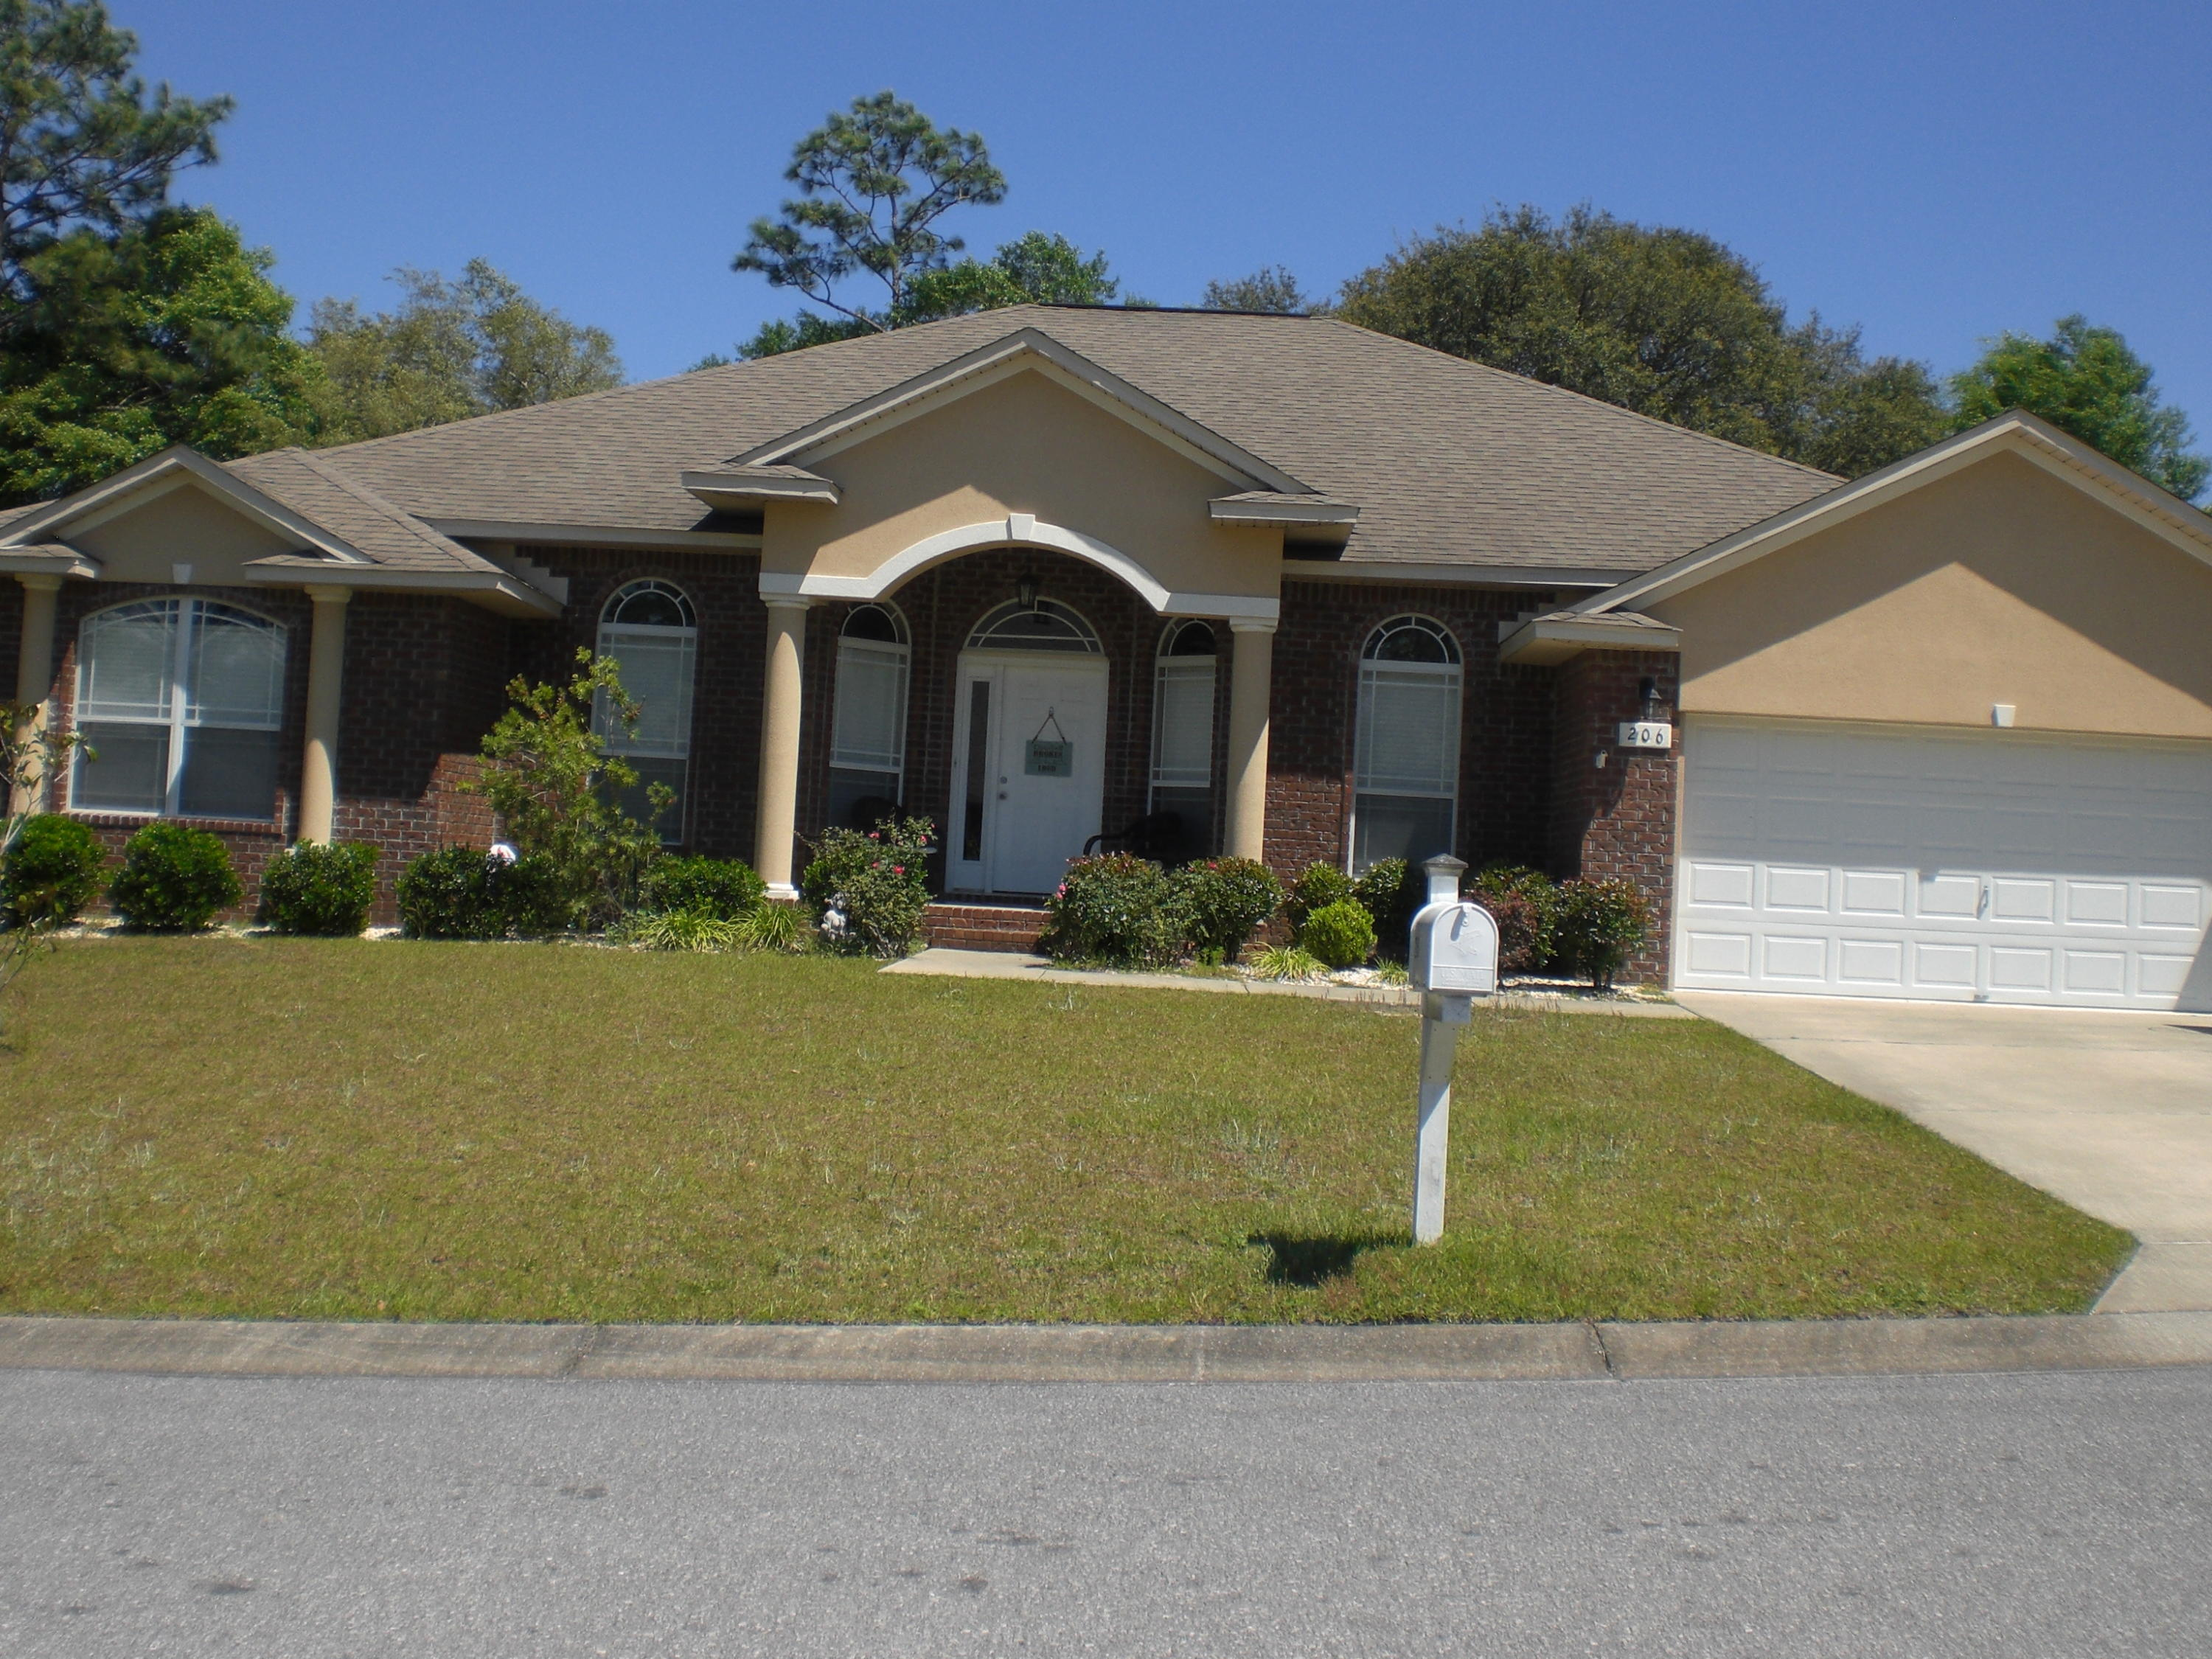 Photo of home for sale at 206 Pinque Coat, Crestview FL